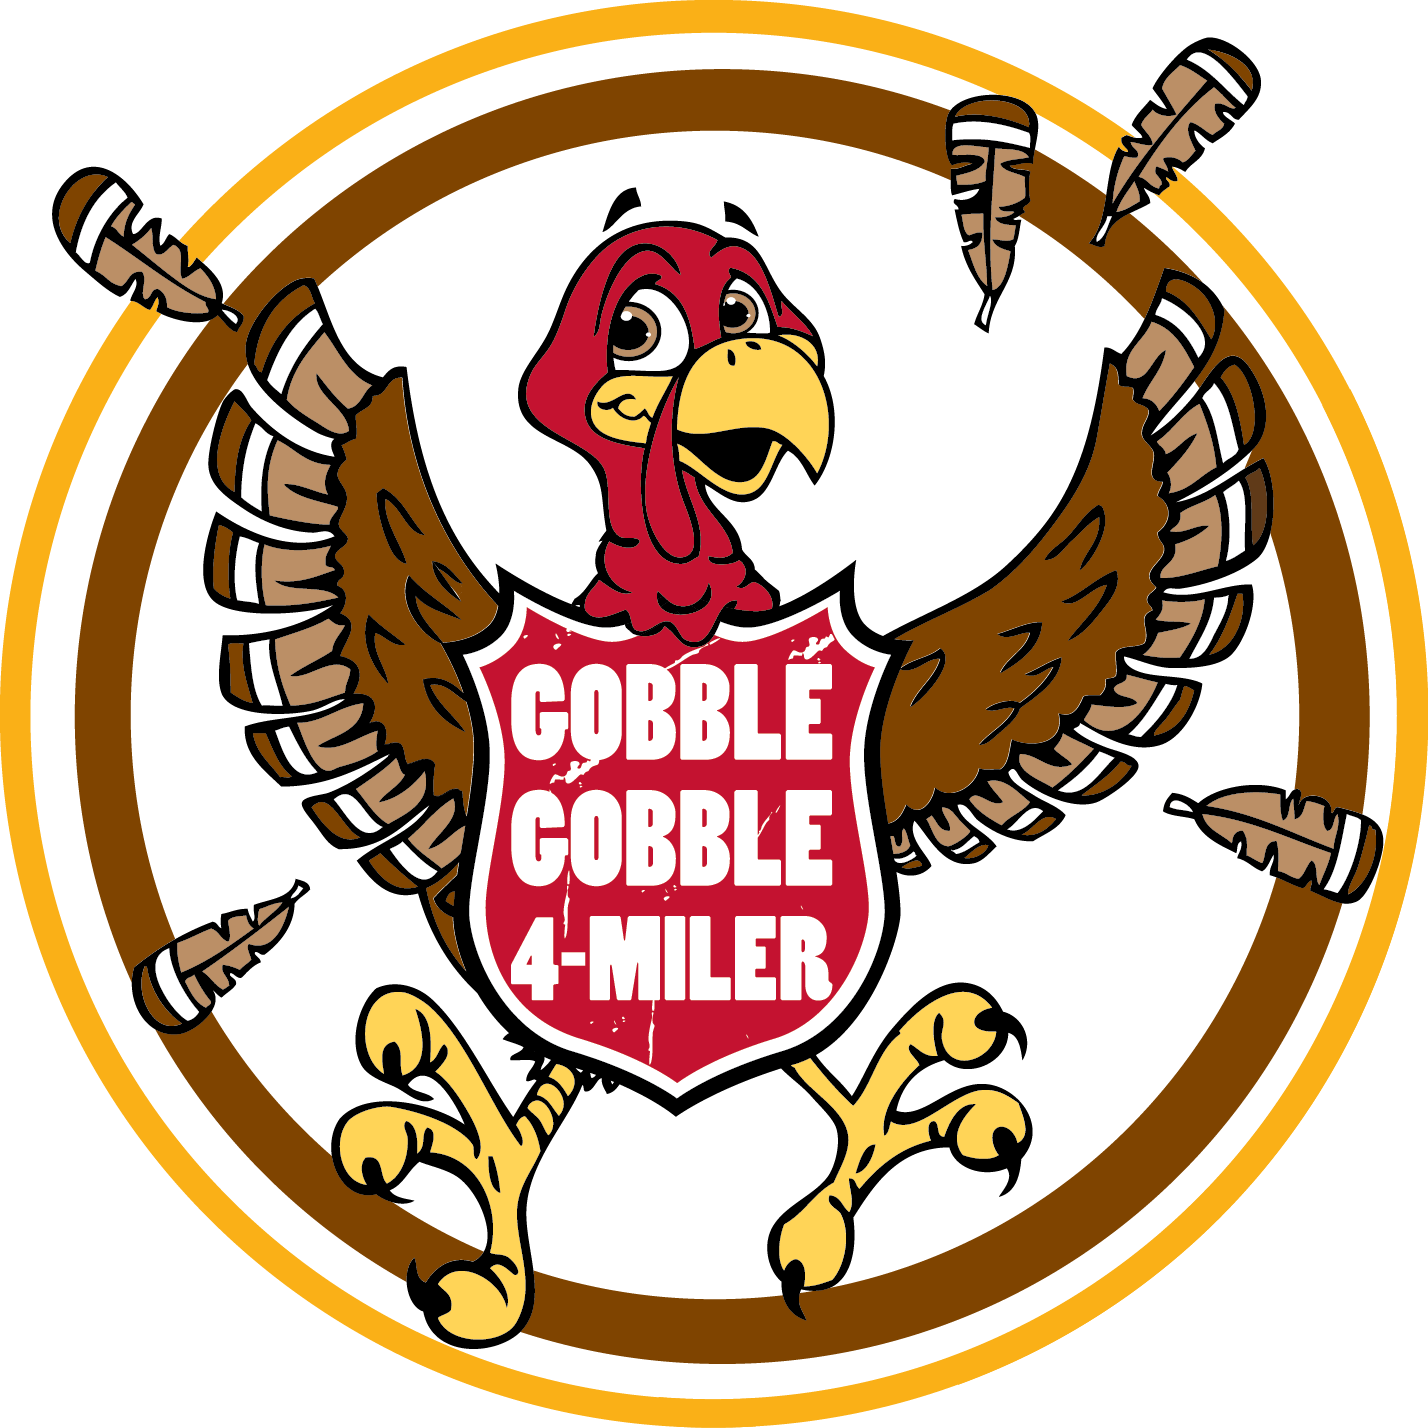 Turkey trot clipart png black and white stock About Gobble - Gobble Gobble Four Miler ™ png black and white stock